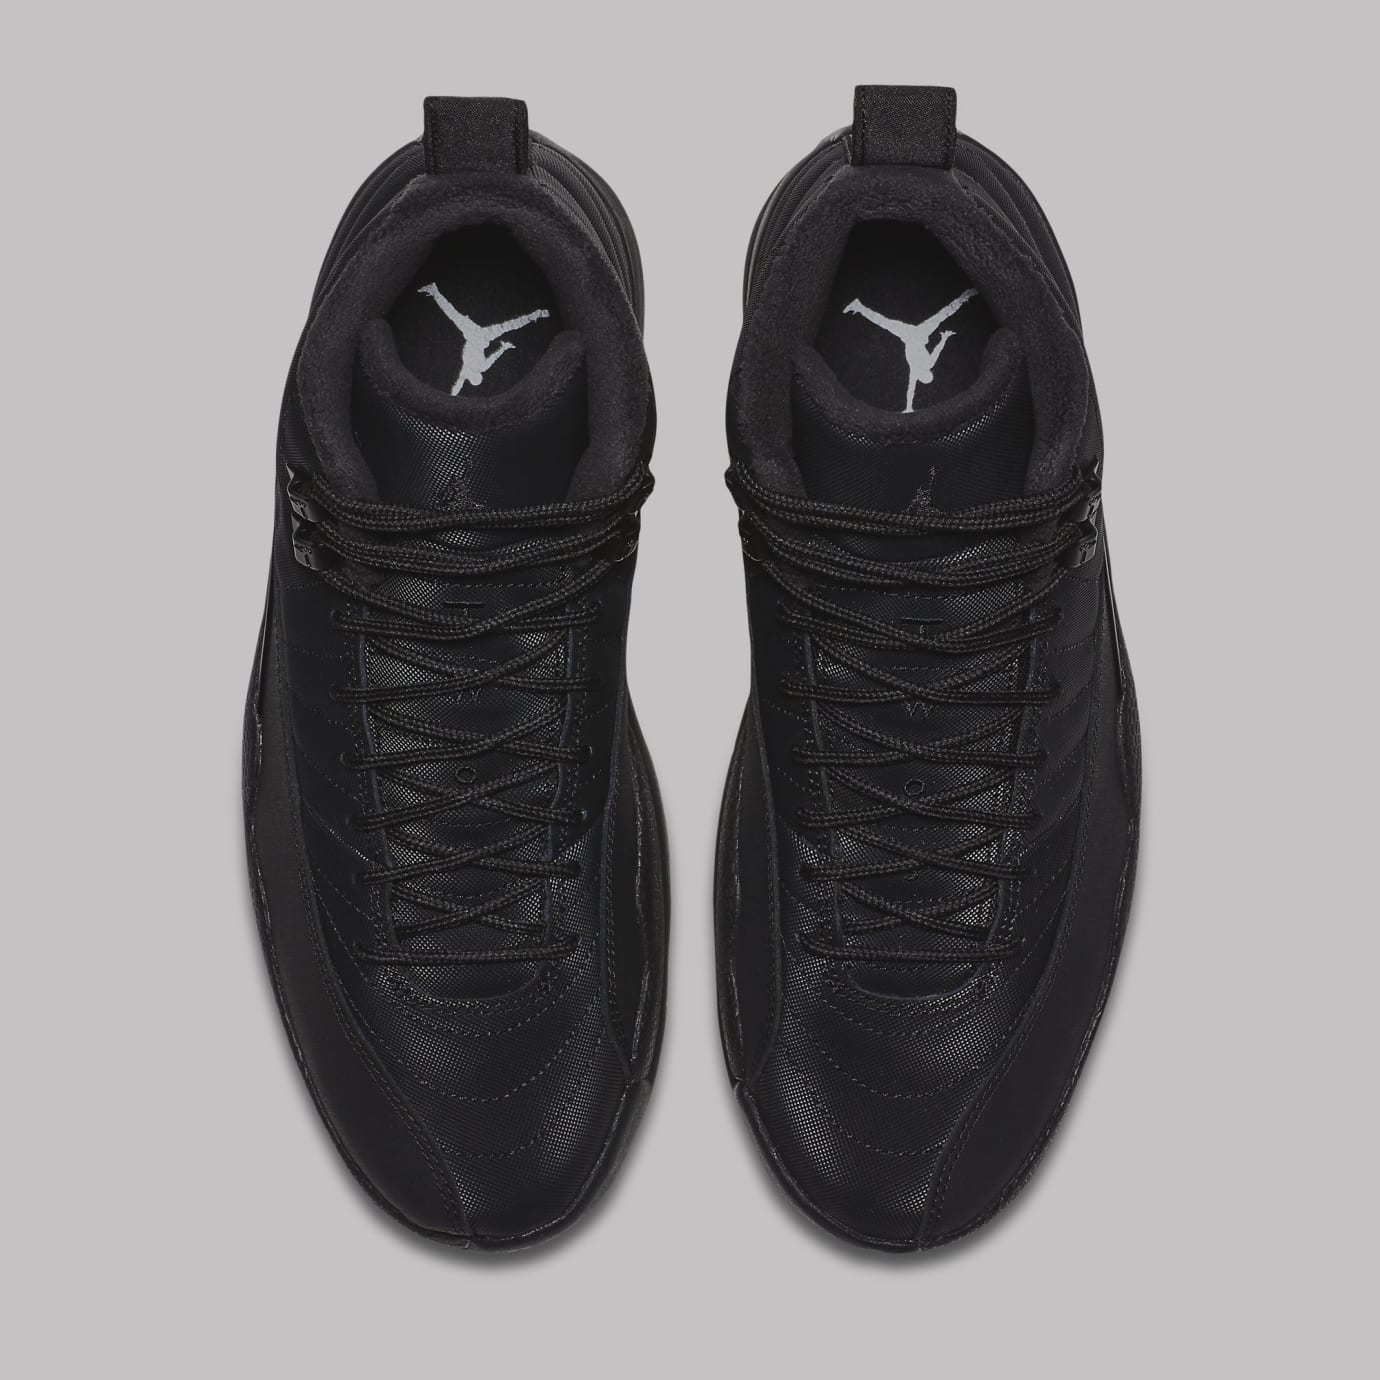 927dc4bb3d5250 Image via Nike air-jordan-12-winterized-black-bq6851-001-top